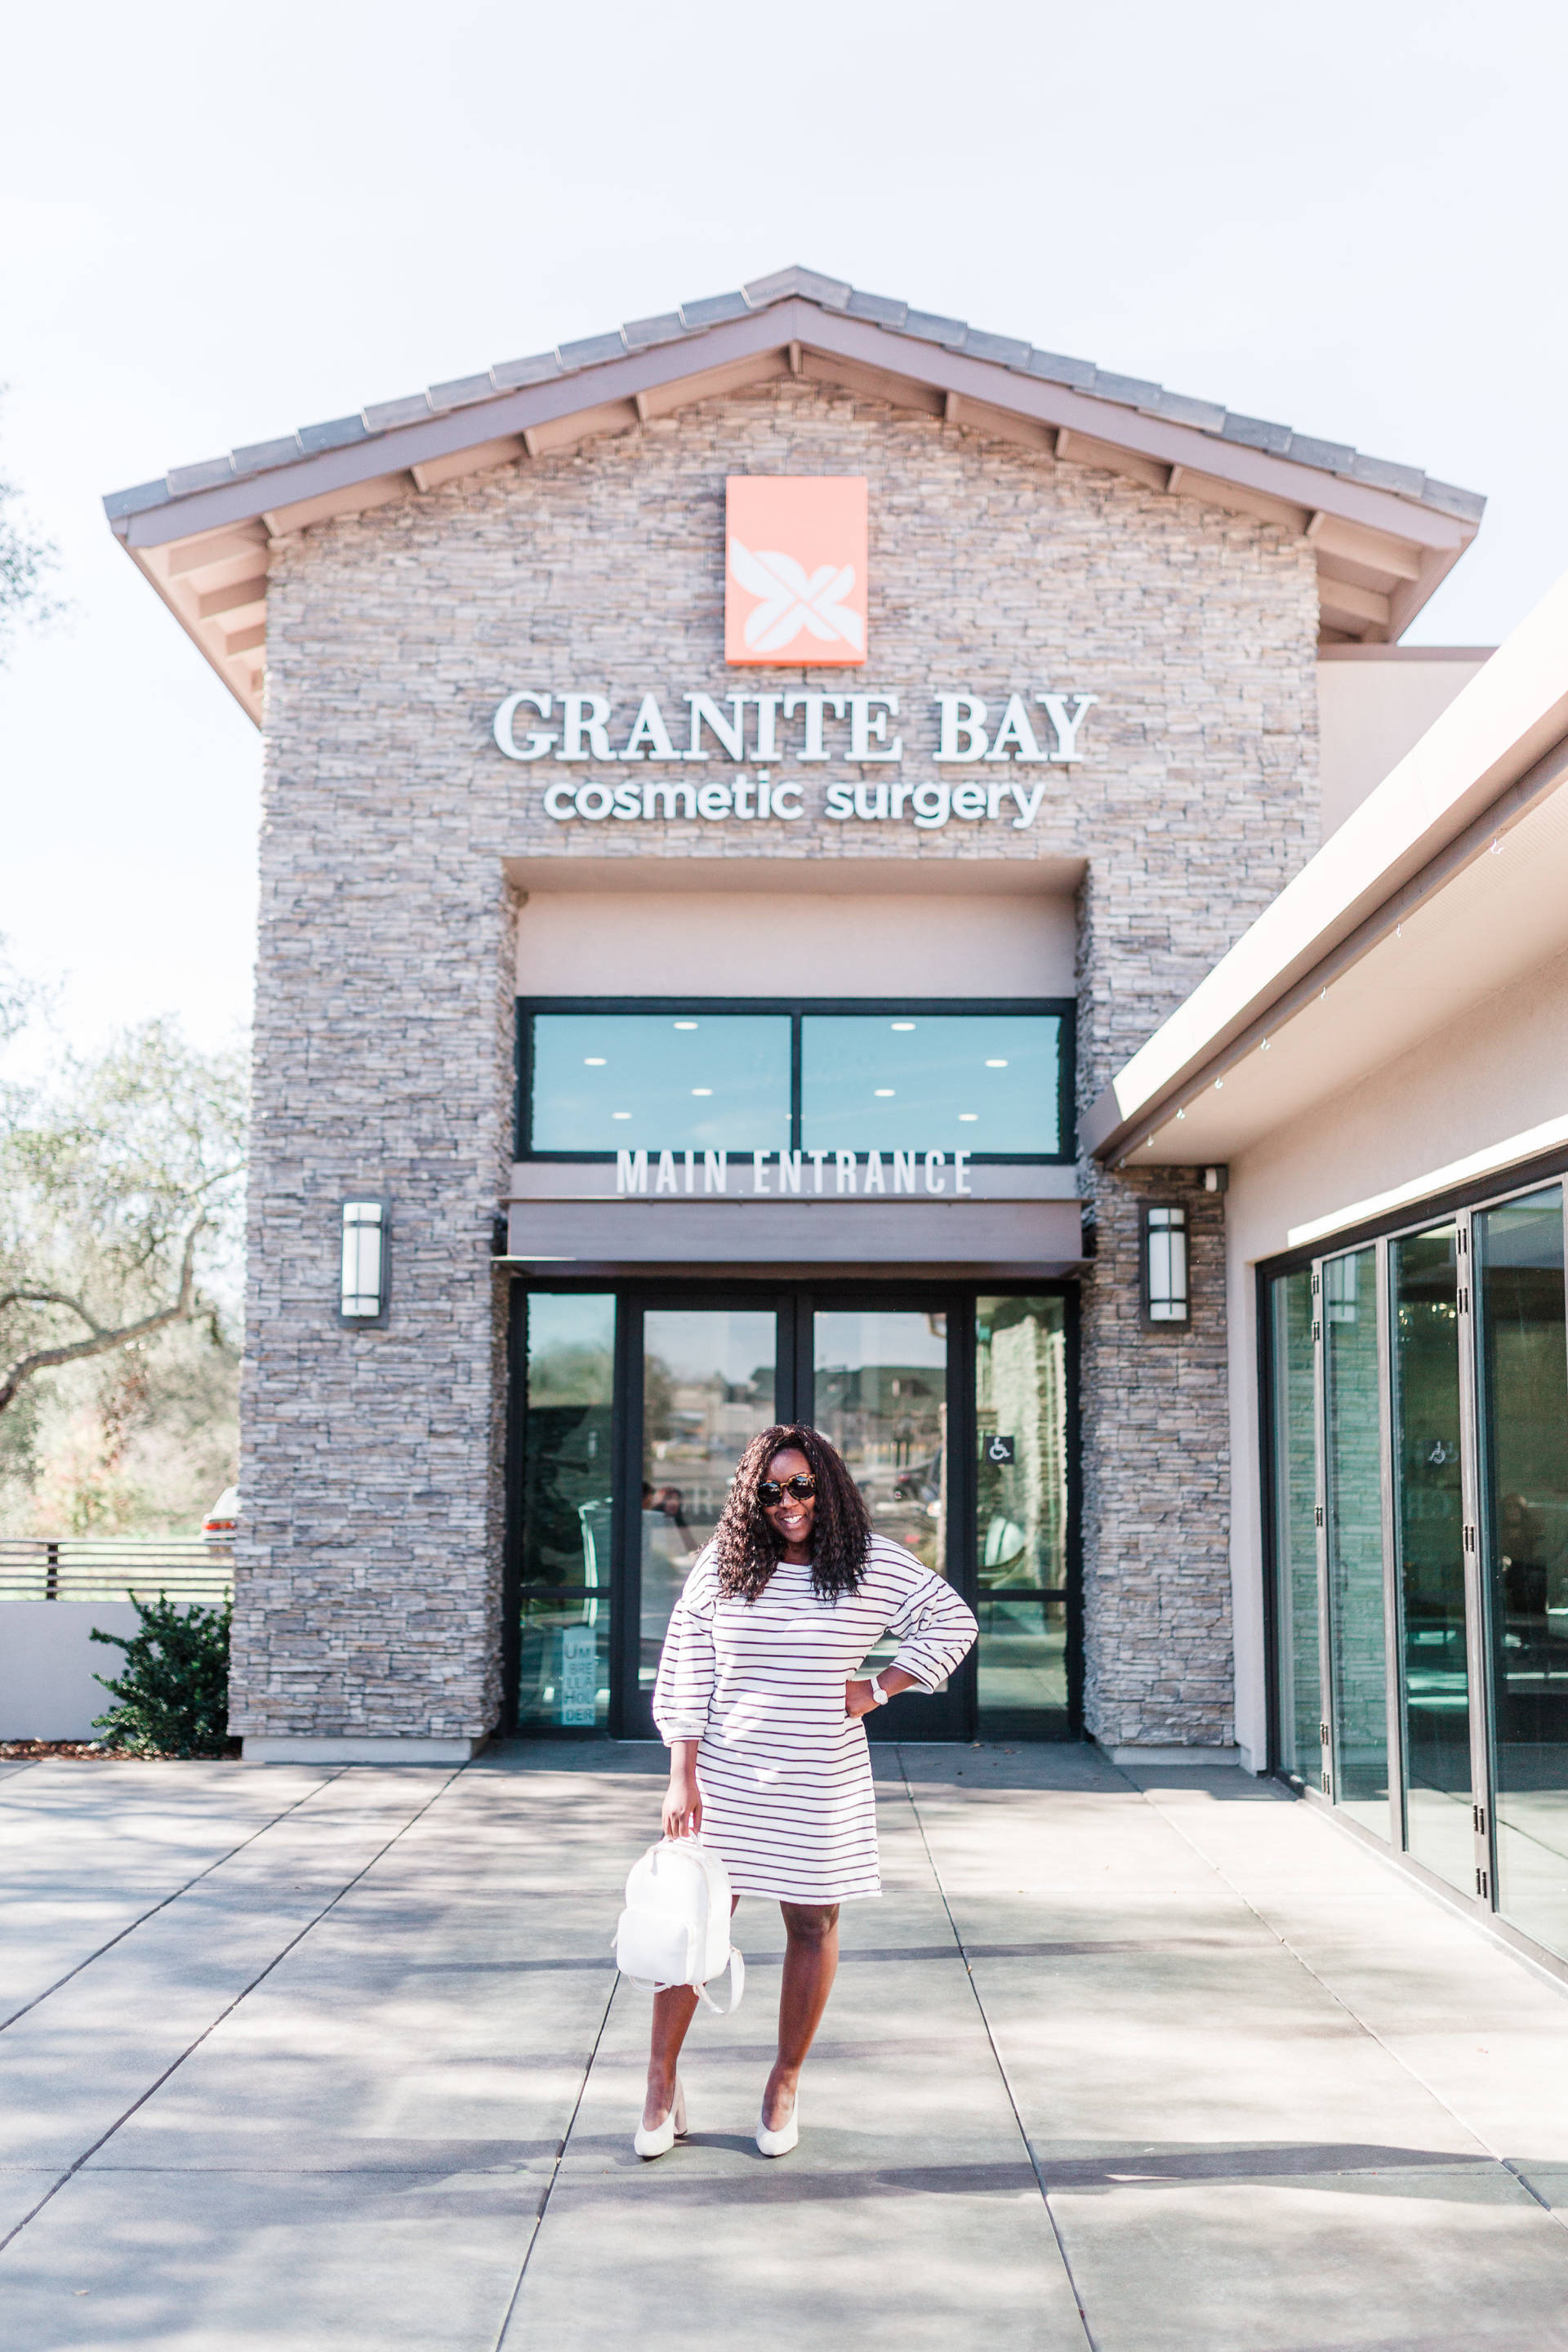 Ruthie Ridley Blog I finally locked into a skin care routine that works for me! I have always been overwhelmed with skincare products and just needed some help! Thankful for Granite Bay Cosmetics expertise!